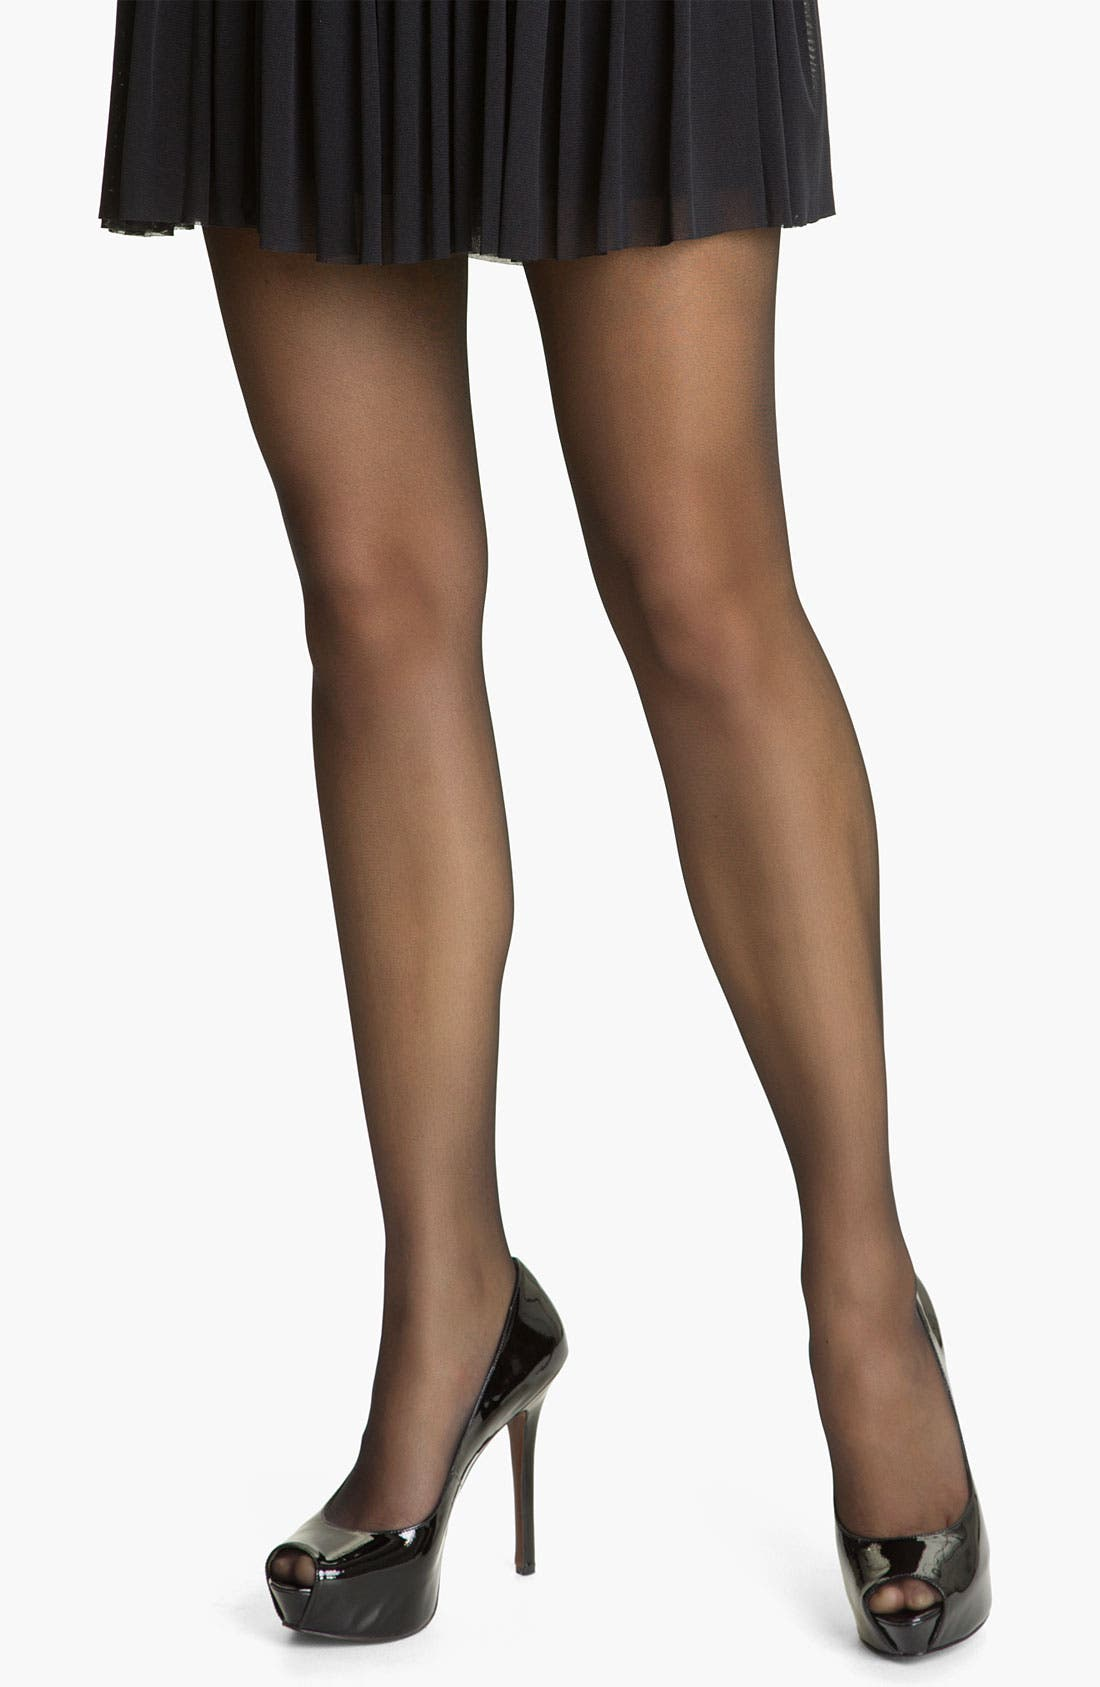 Falke 'Pure Shine 15 Denier' Stockings